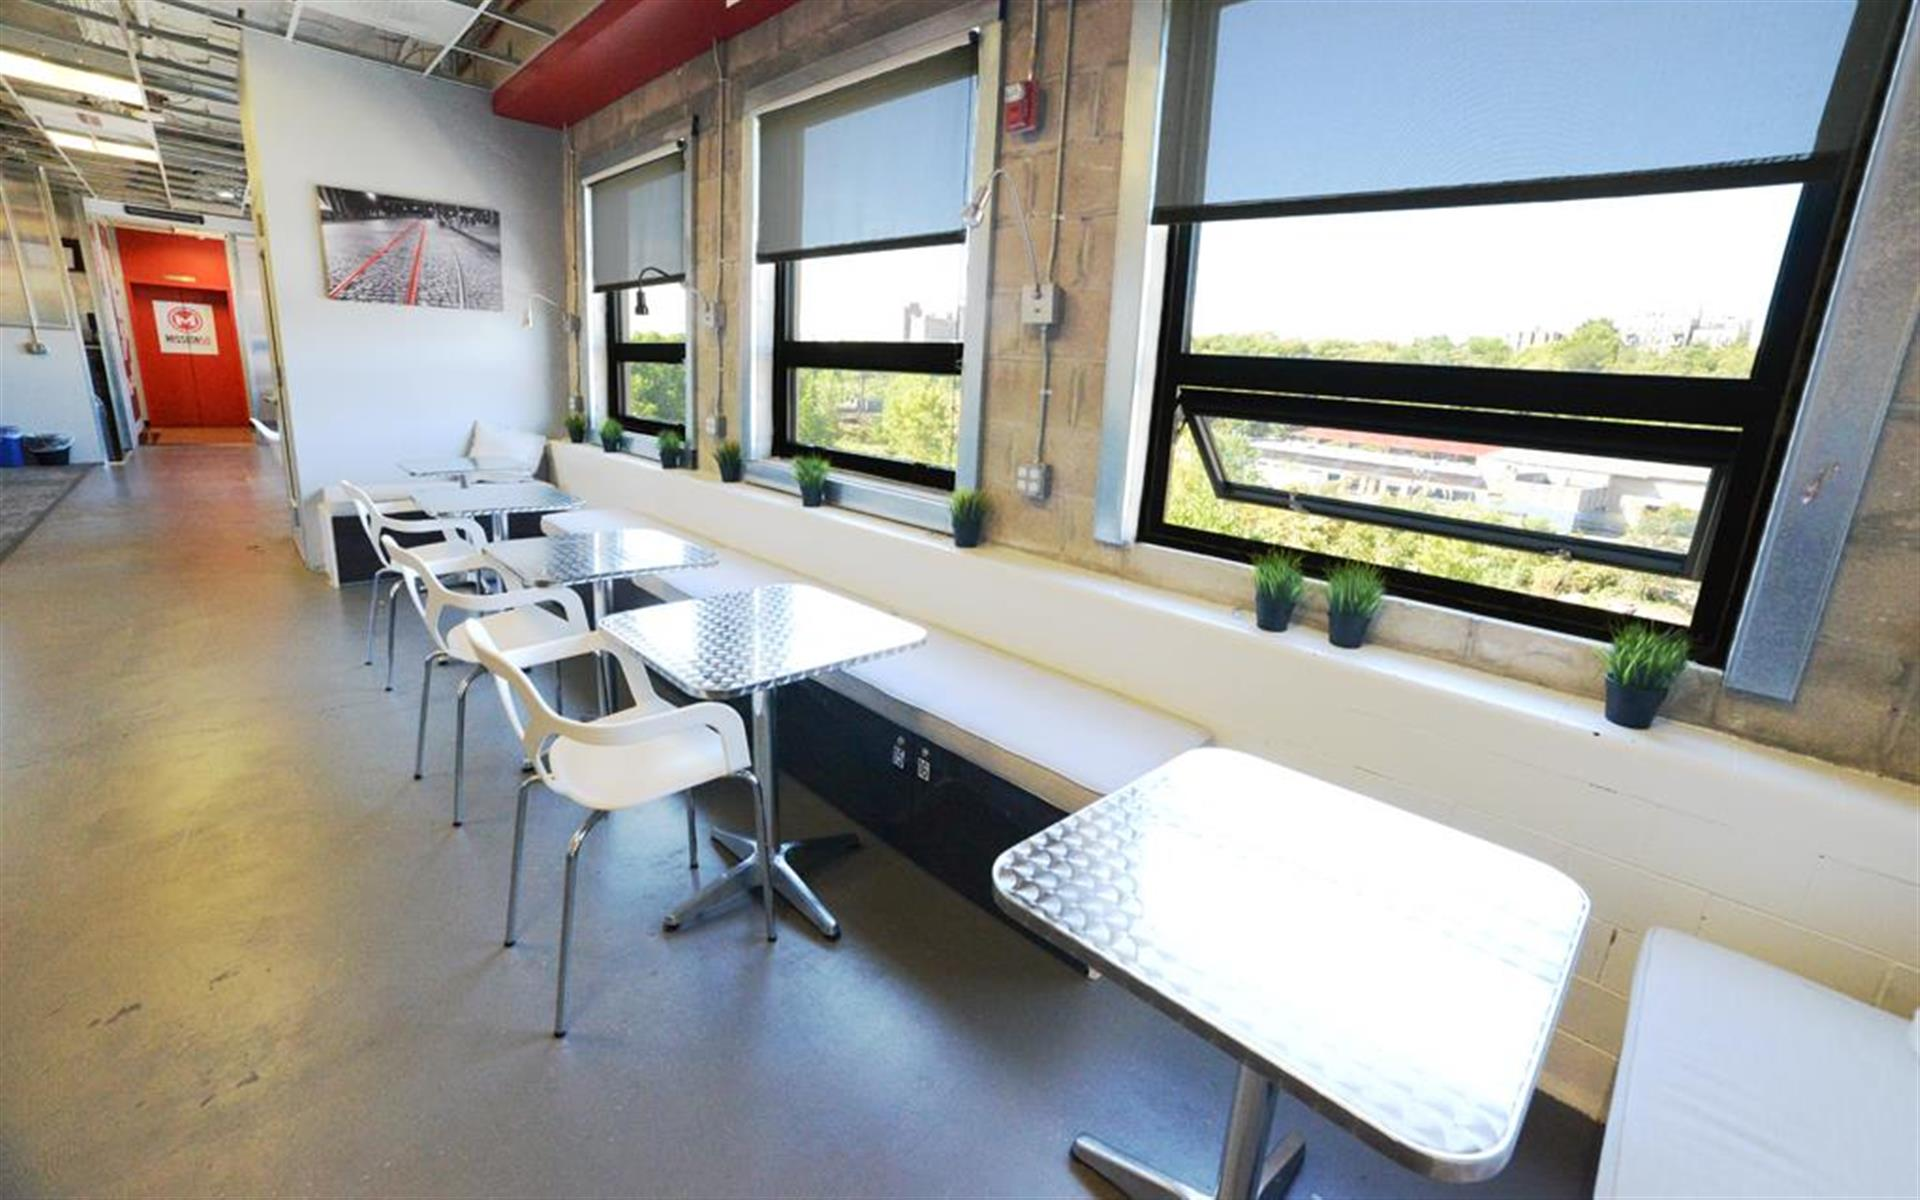 Mission 50 - NJ's Premier Coworking Space - Open Desk Coworking for 12